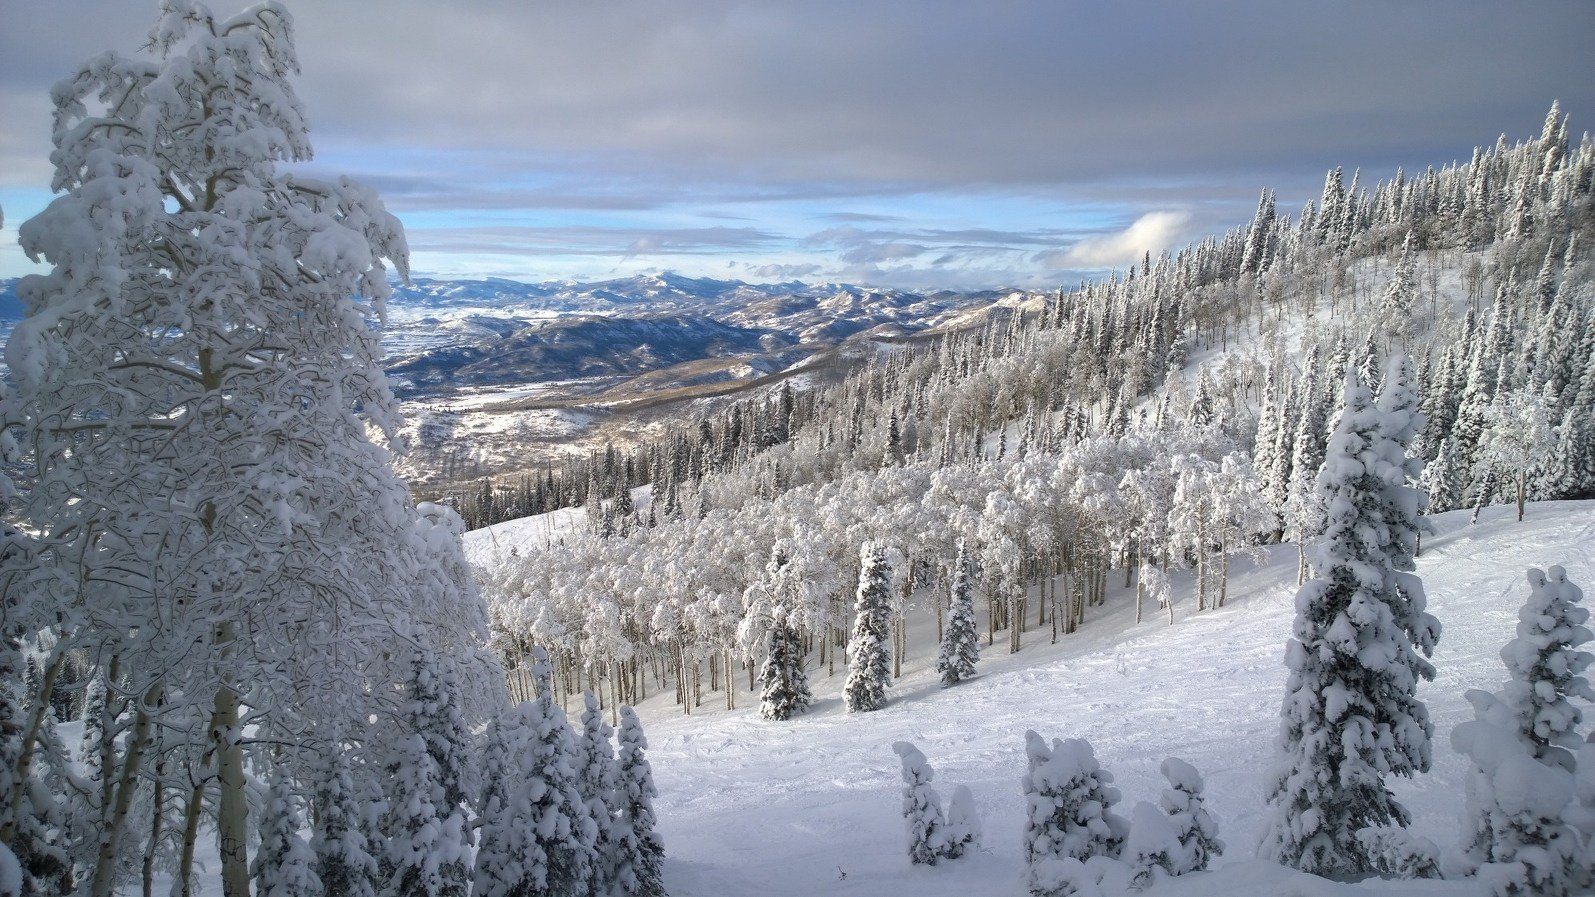 The slopes of Steamboat Springs, Colorado